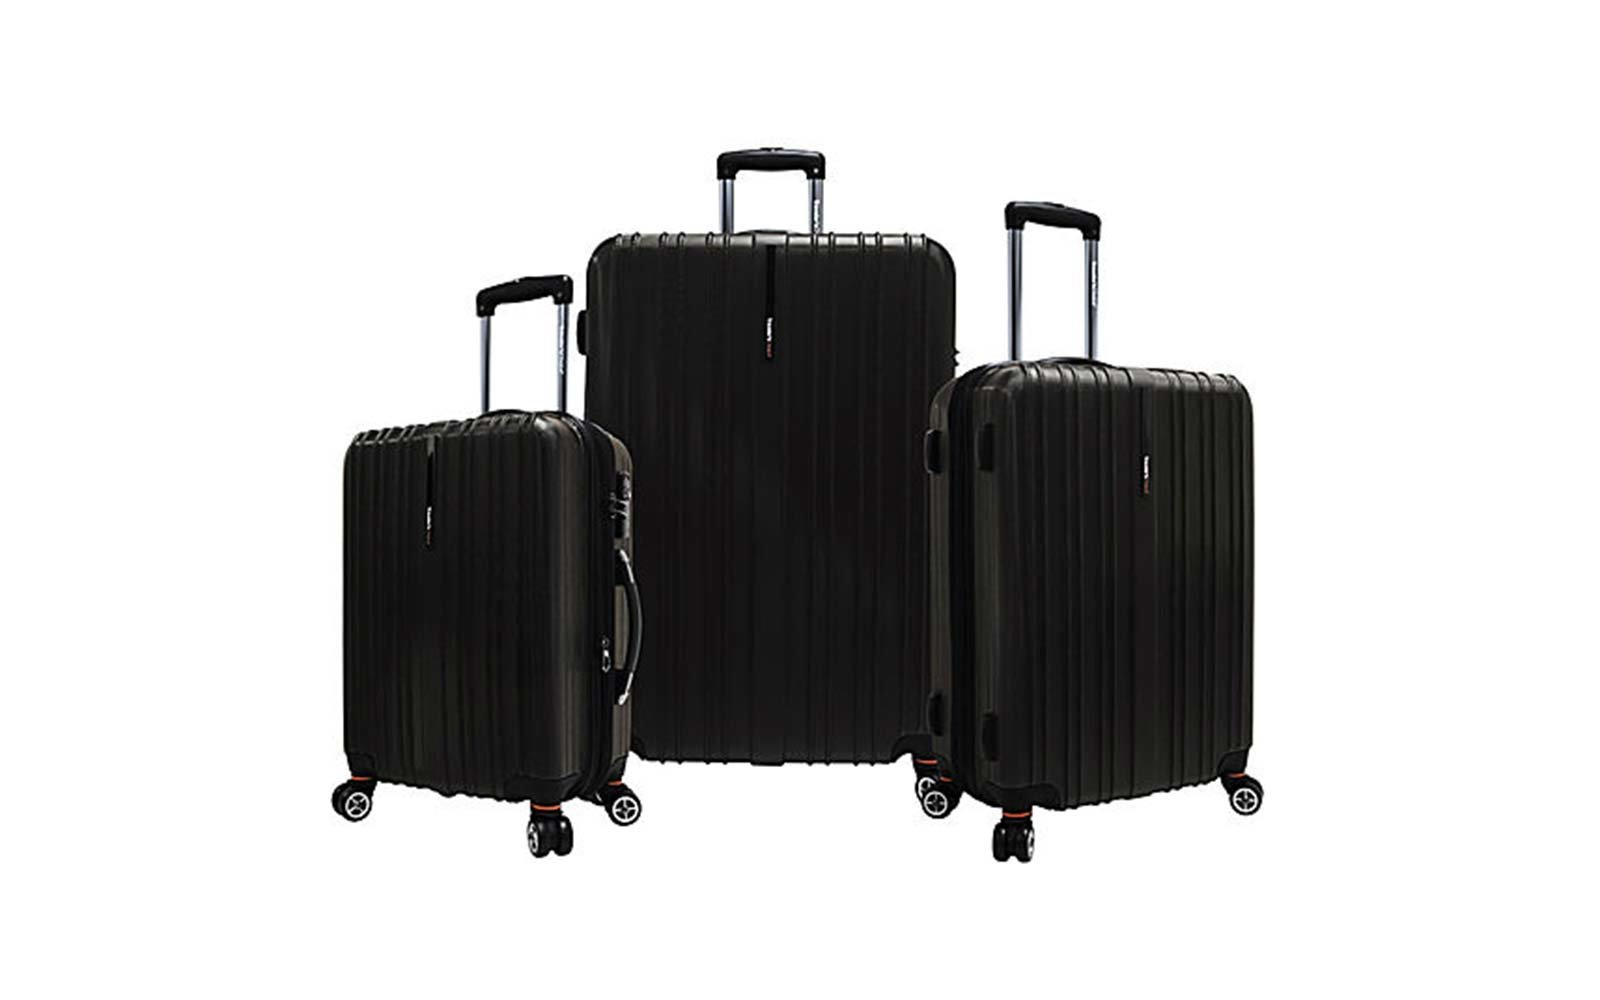 Traveler Choice Tasmania Expandable Hardside Spinner Luggage Set